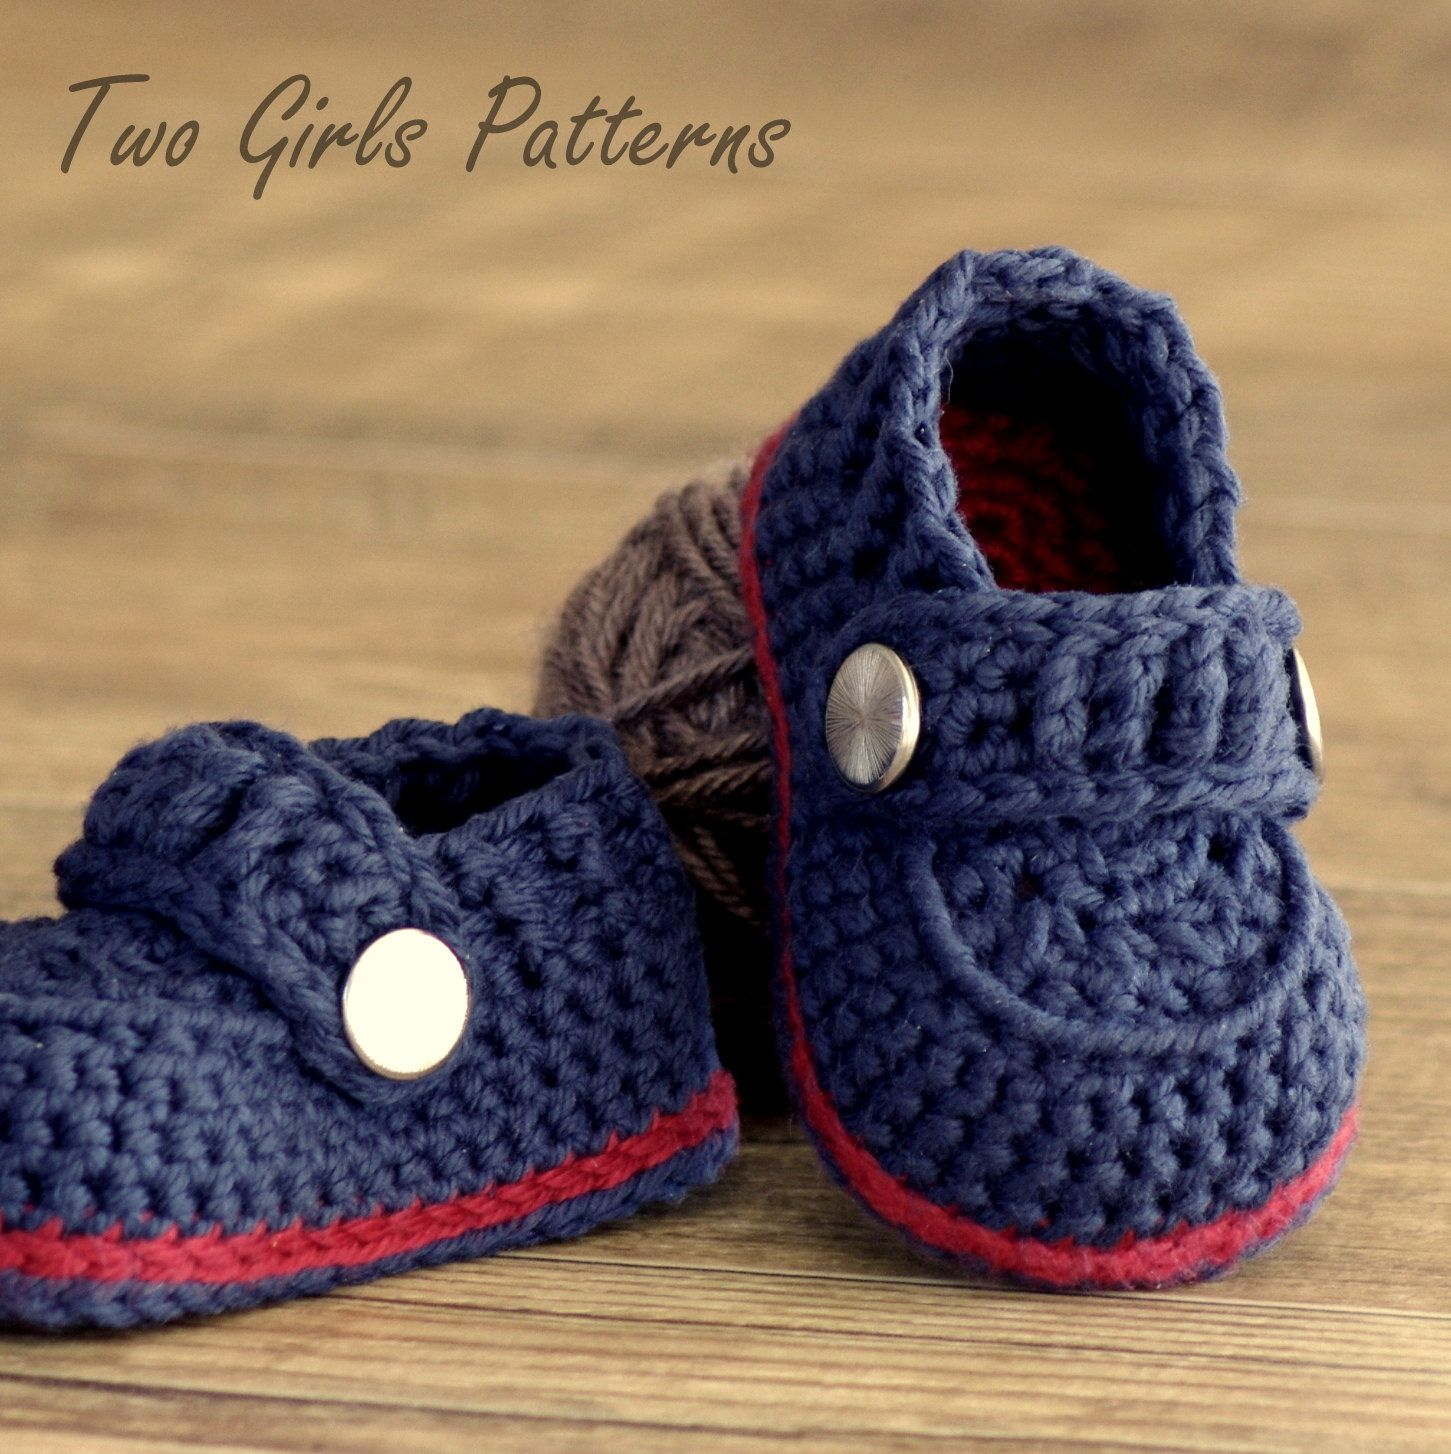 Crochet patterns baby boy booties the sailor pattern number crochet patterns baby boy booties the sailor pattern number 203 instant download kc550 bankloansurffo Image collections